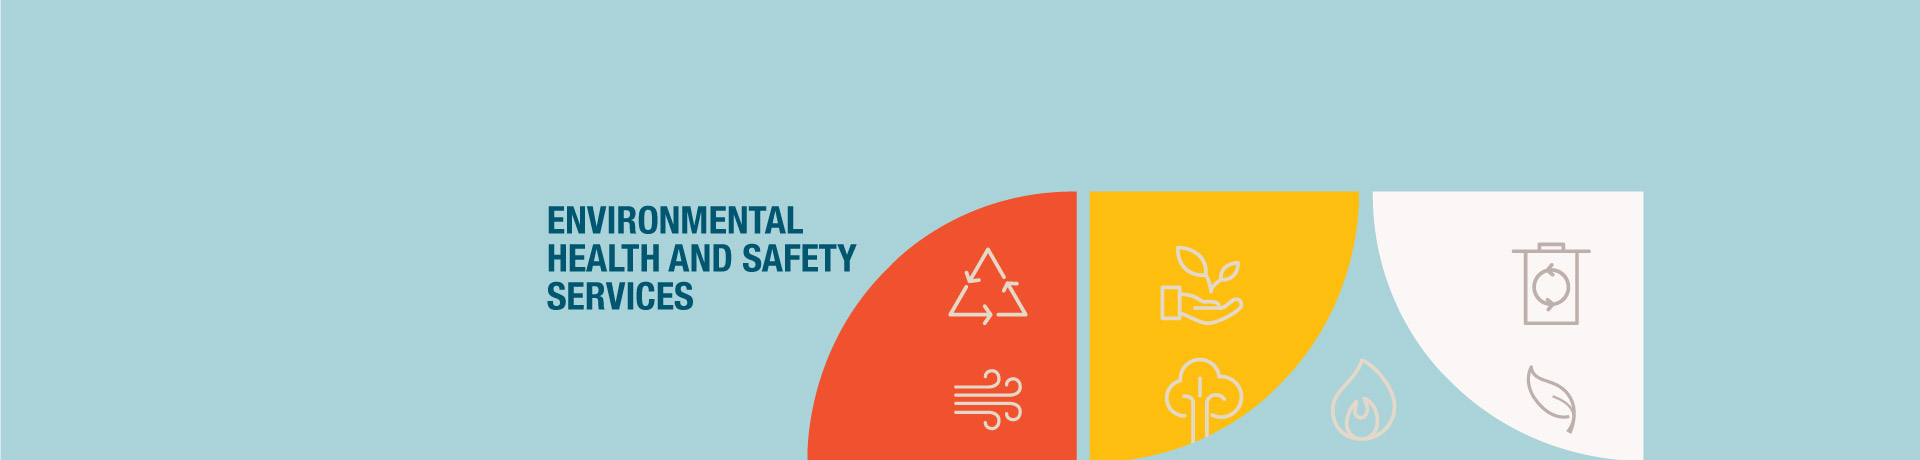 Environmental Health and Safety Services